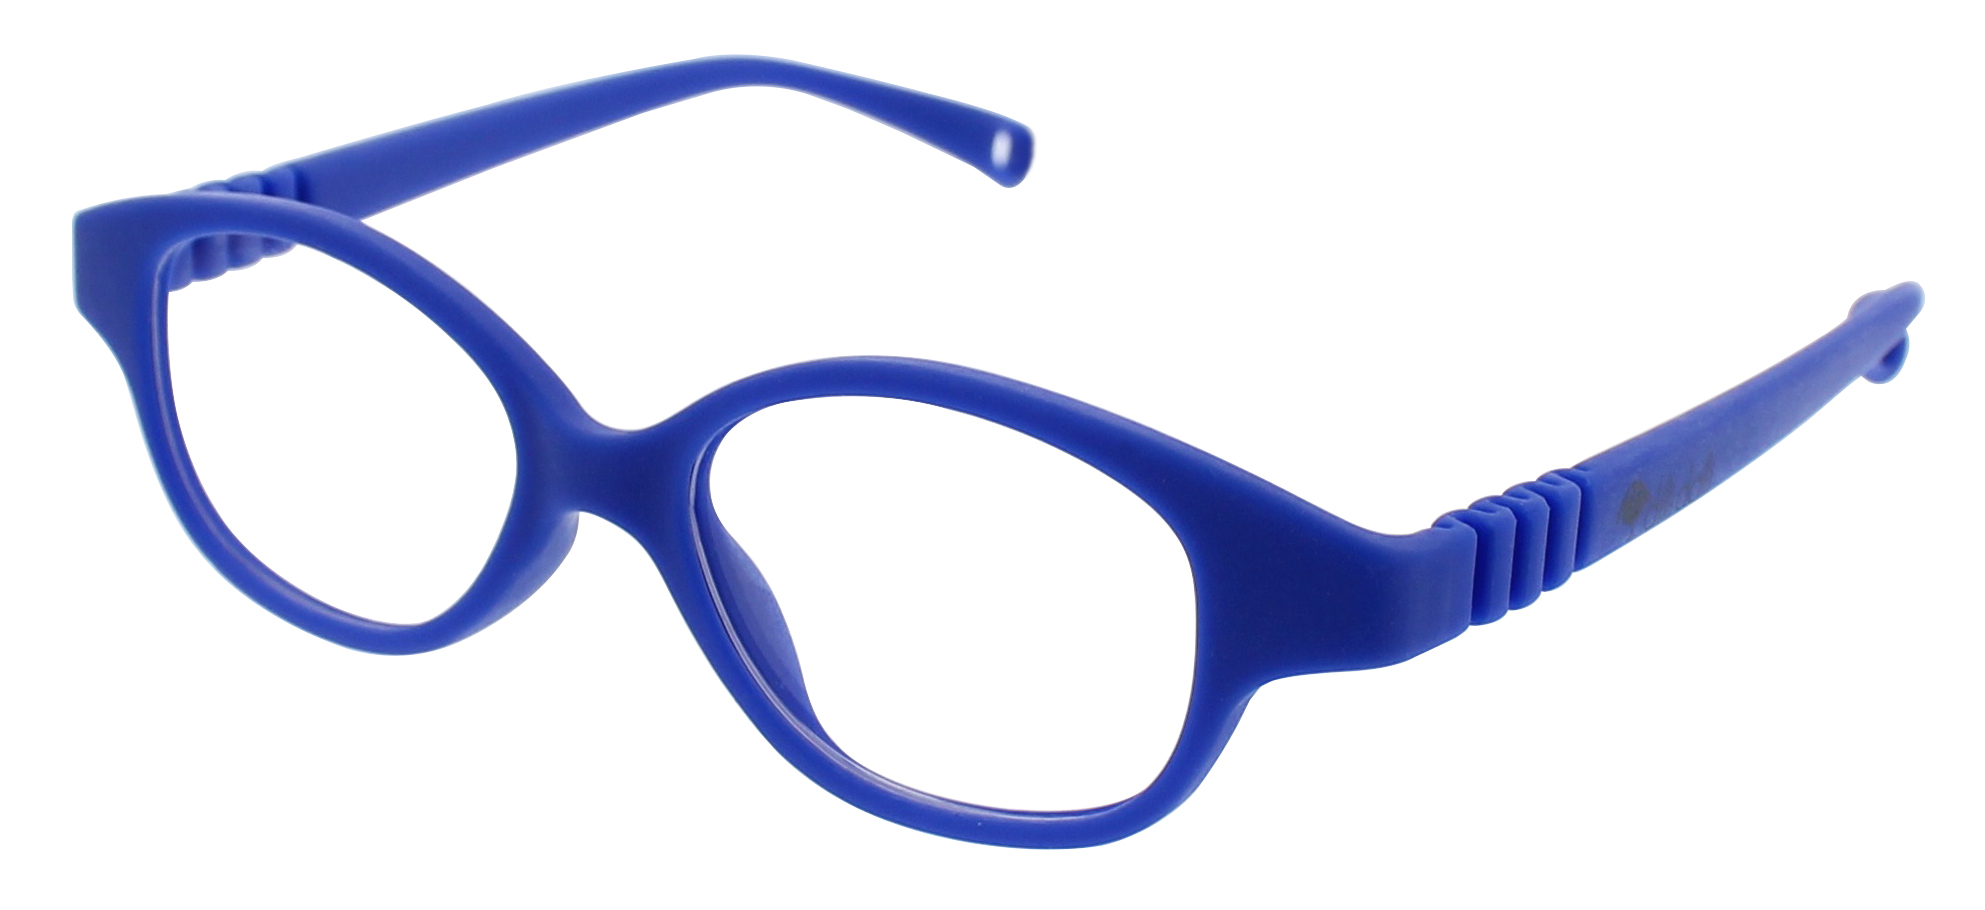 18d4fe3e3c Dilli Dalli Cake Pop Kids Eyeglasses Cobalt Blue Cake Pop-Cobalt Blue -  Optiwow